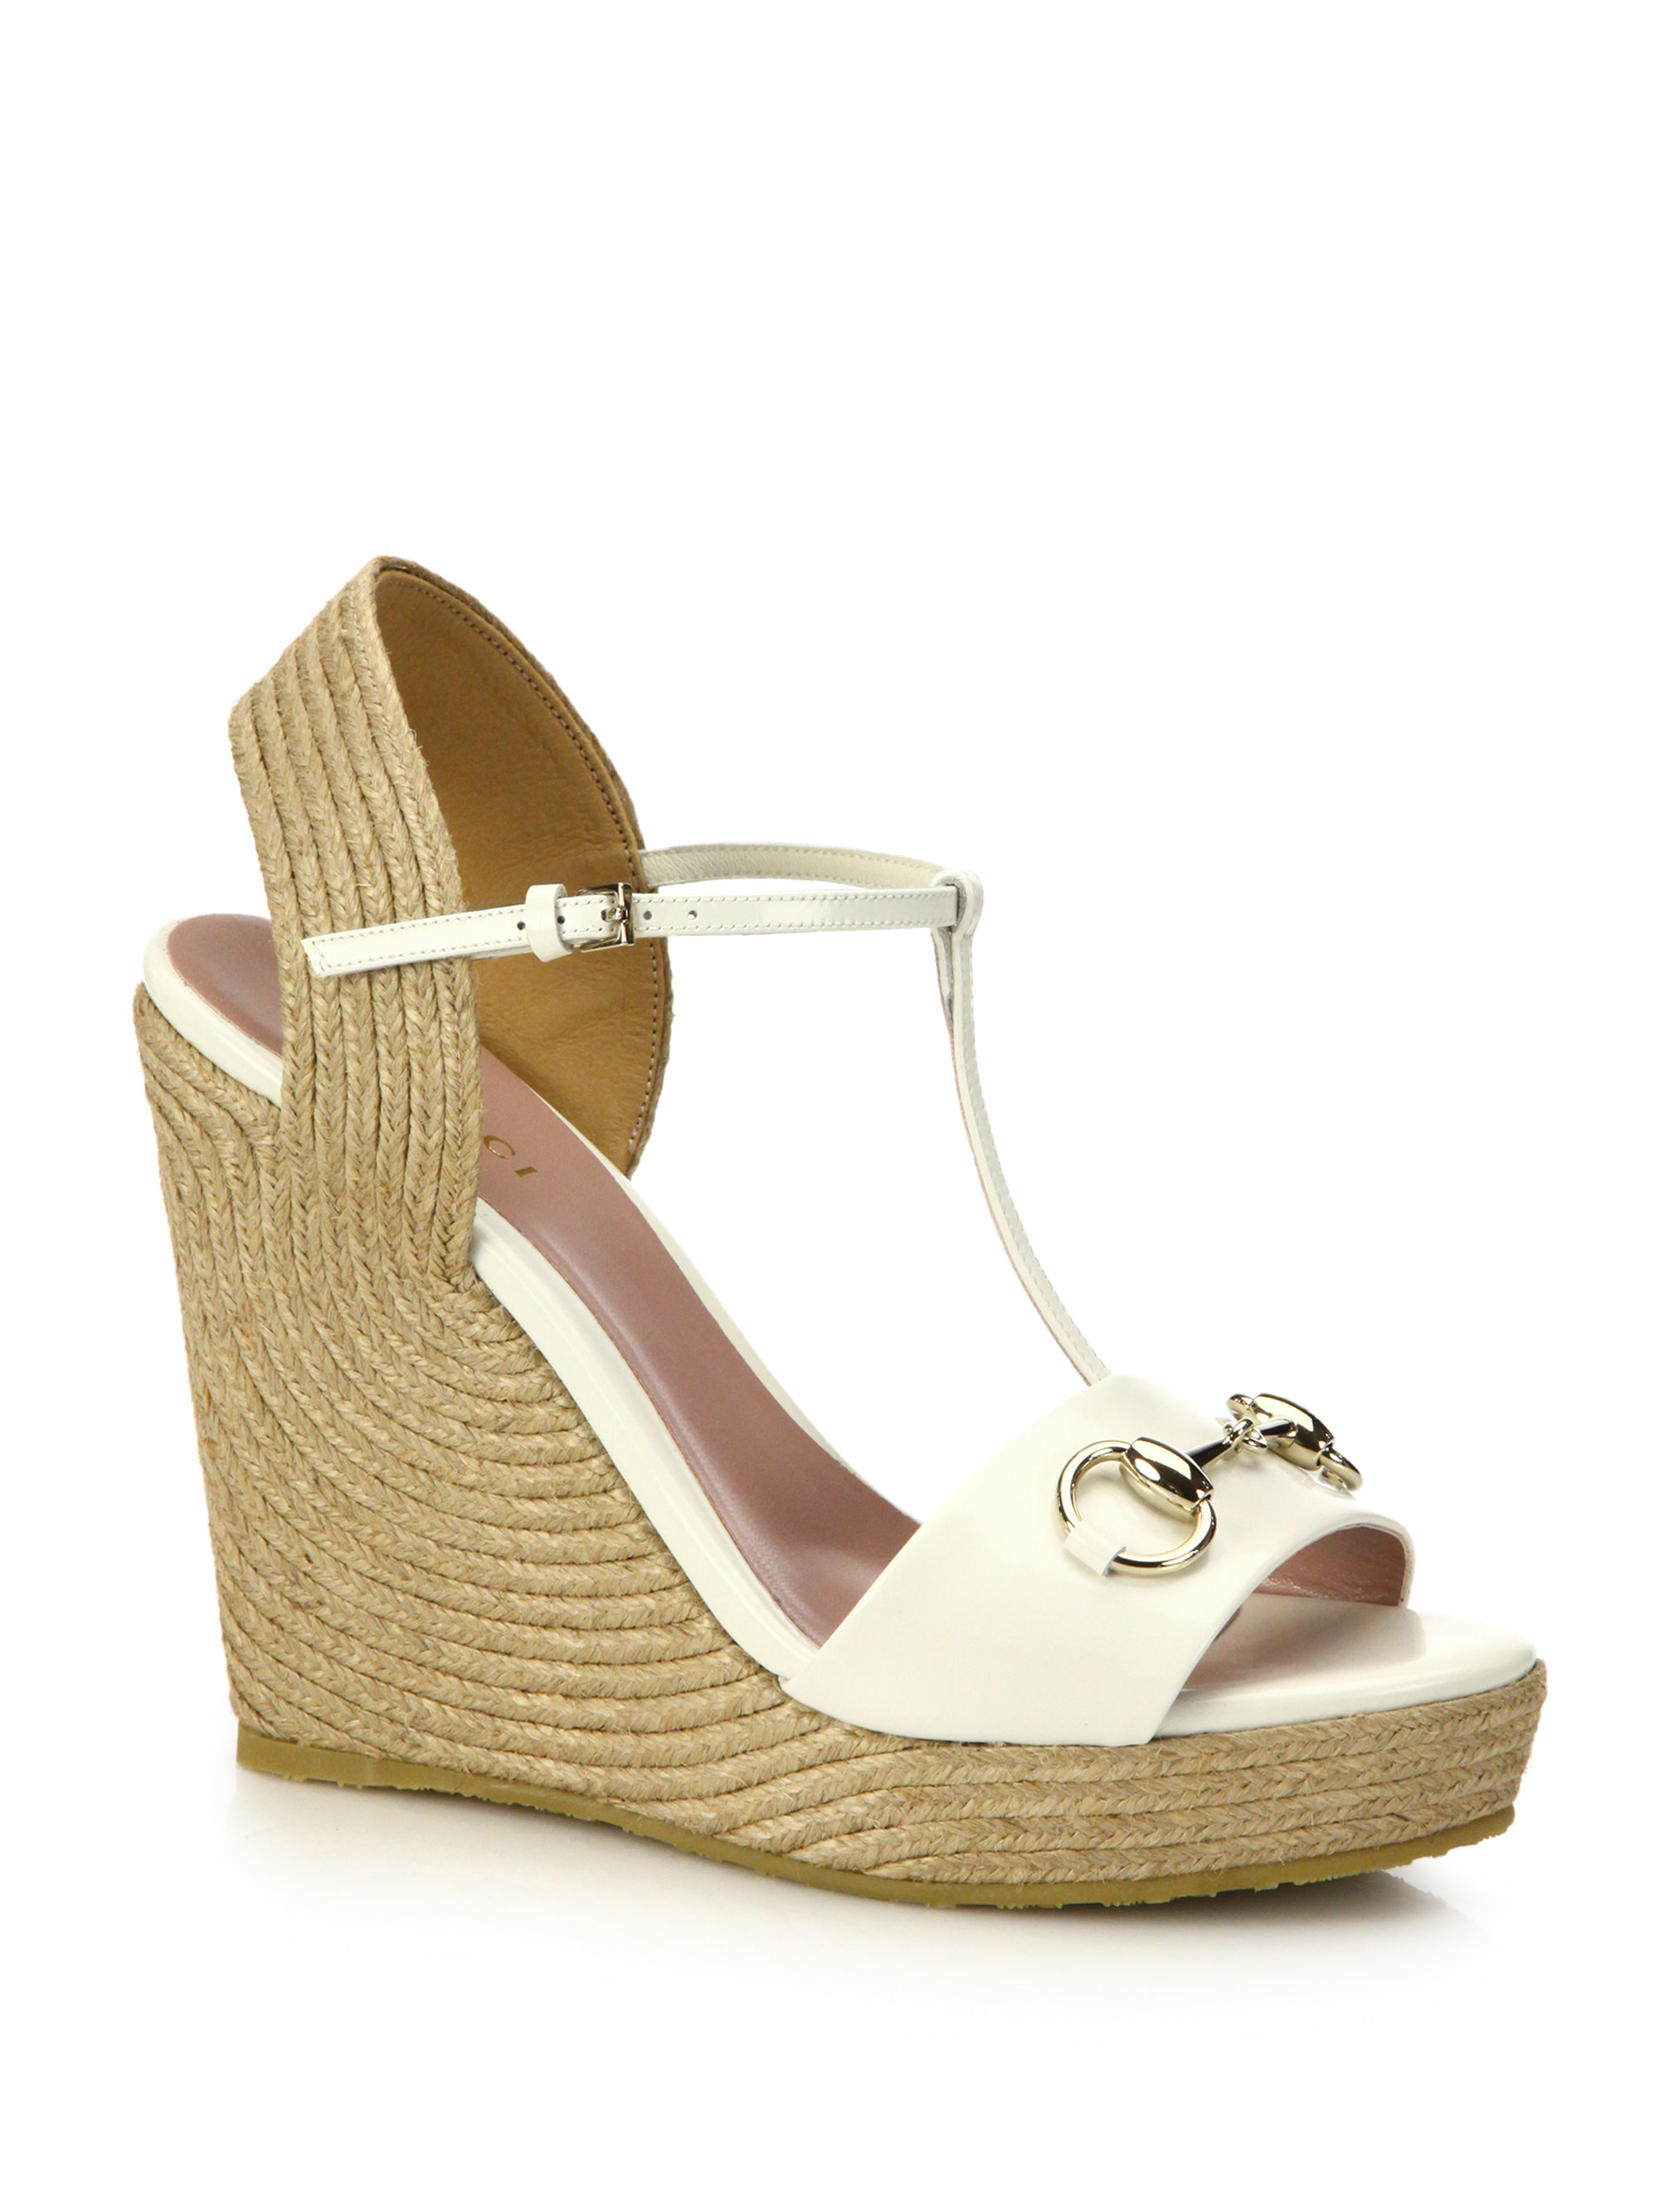 c75d3916b41 Lyst - Gucci Patent Leather Horsebit Espadrille Wedge Sandals in White